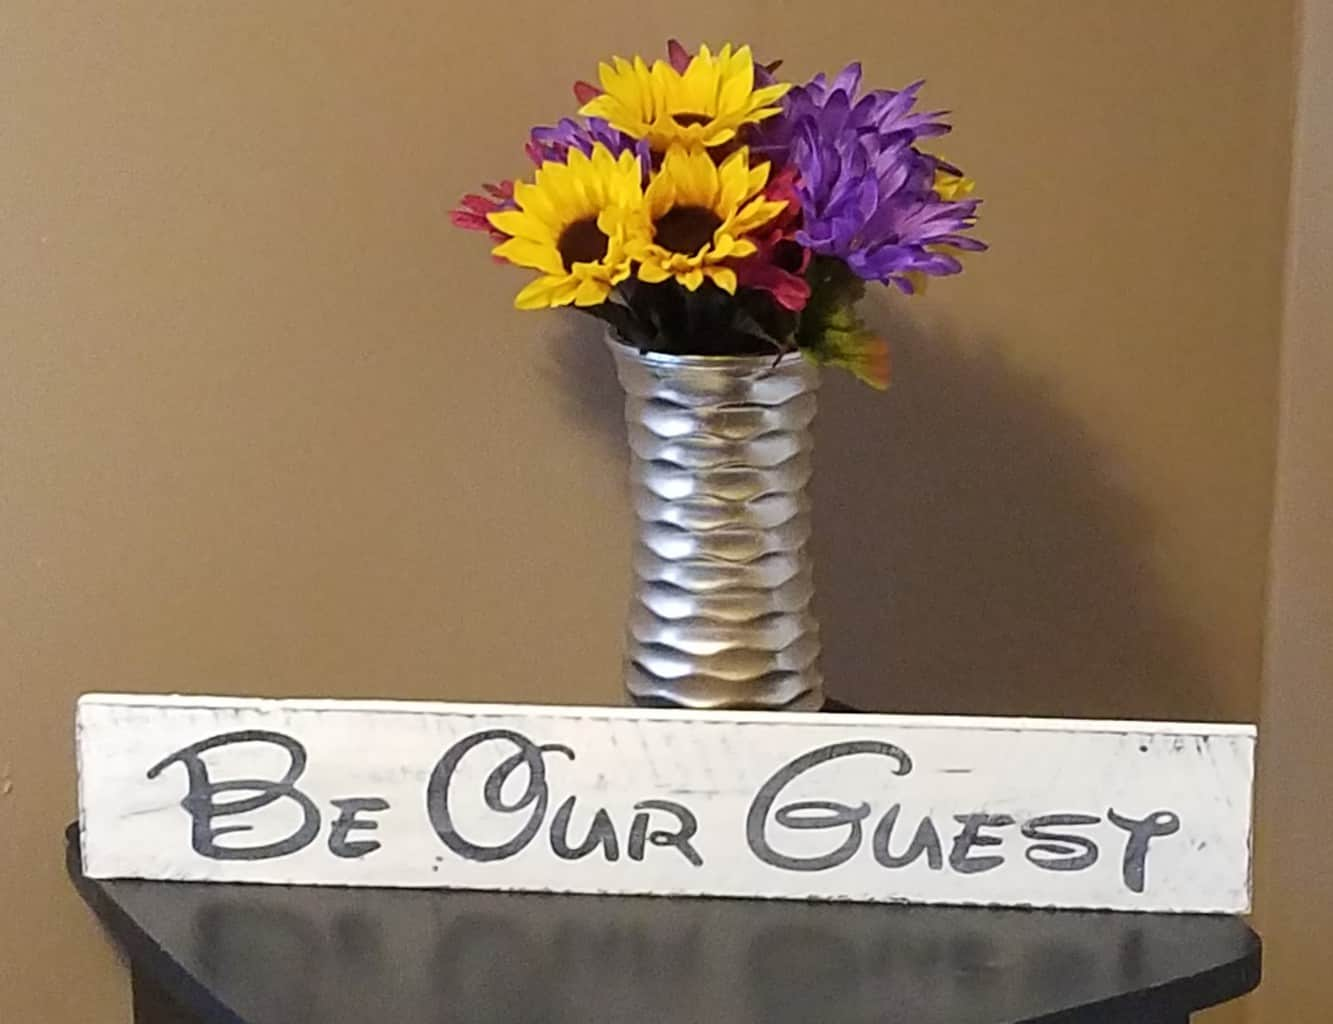 3 ways to make diy painted wood signs cassie smallwood for What kind of paint to use on kitchen cabinets for flower mirror wall art